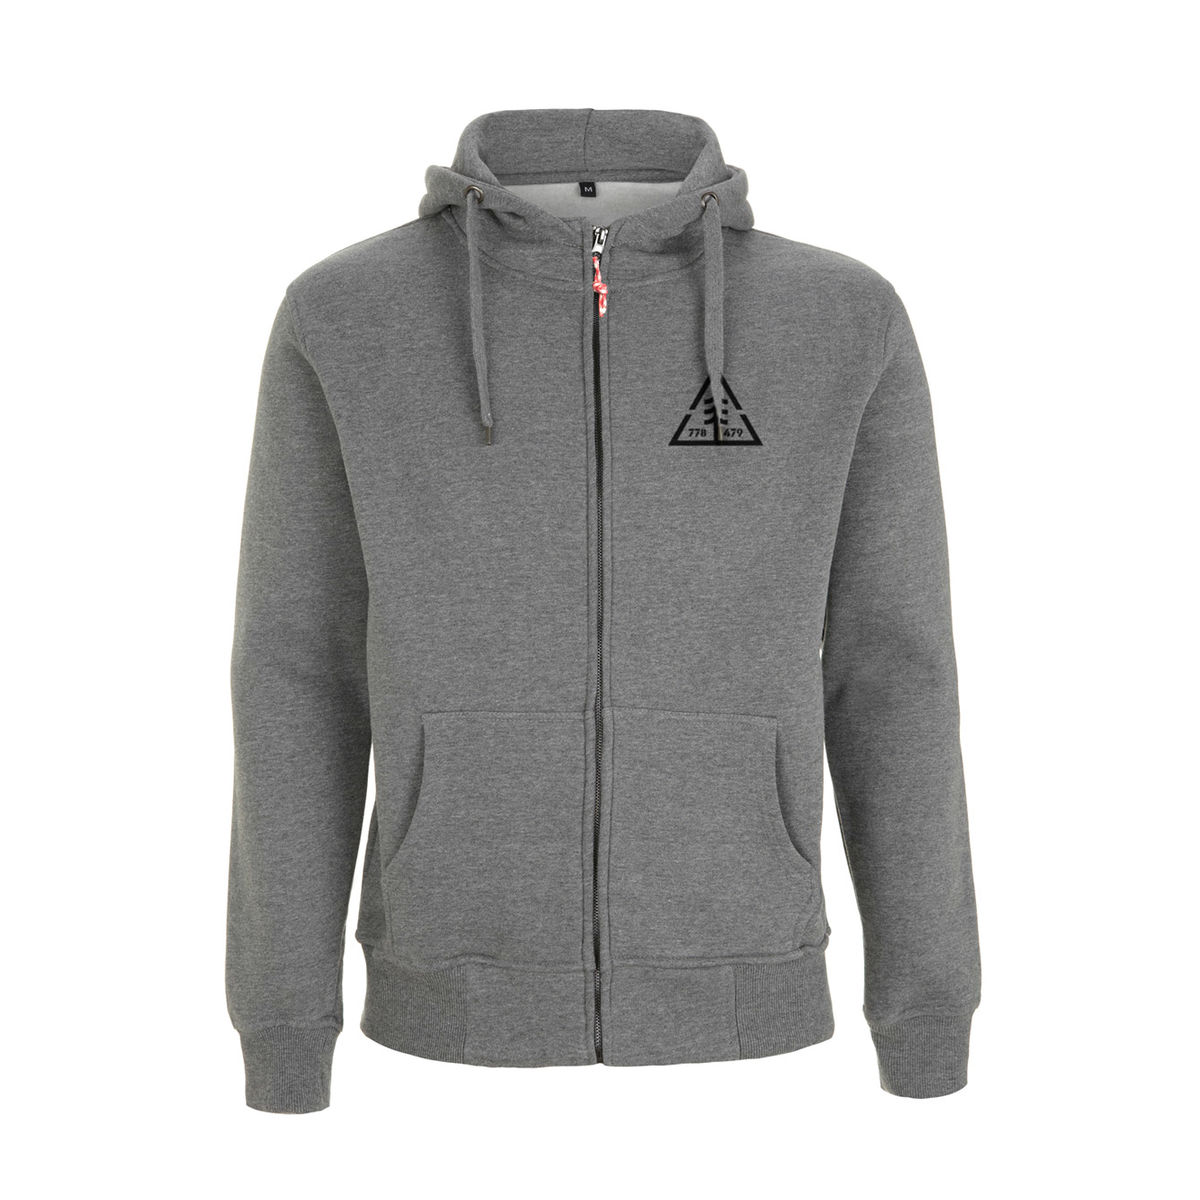 AOP - Auxiliary Outside Projects - Hoodie - product image